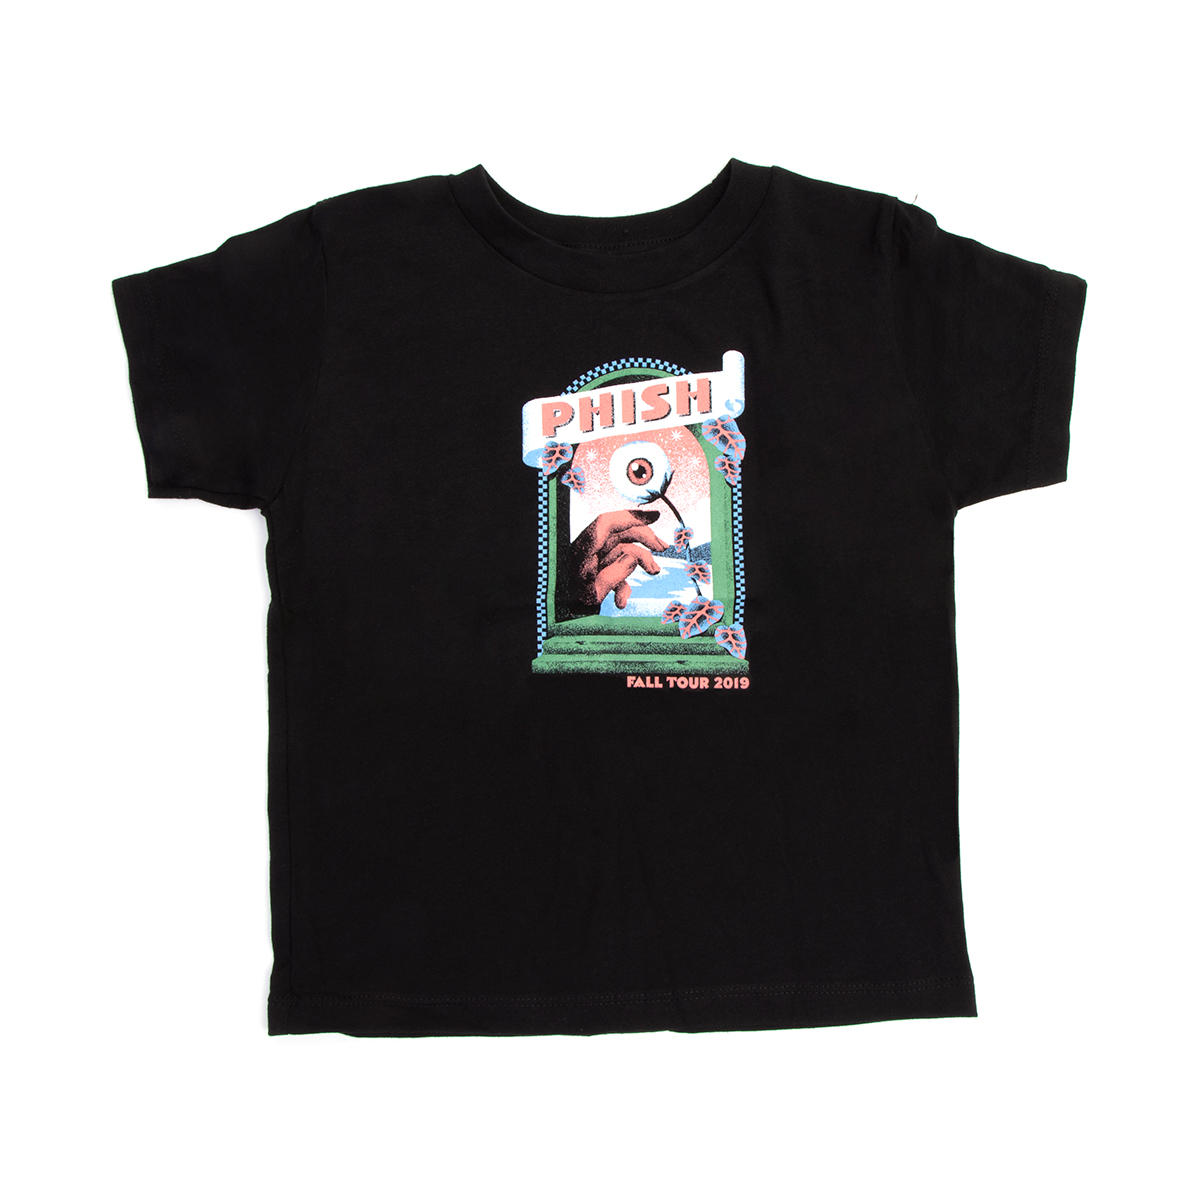 Fall Tour 2019 Toddler T on Black